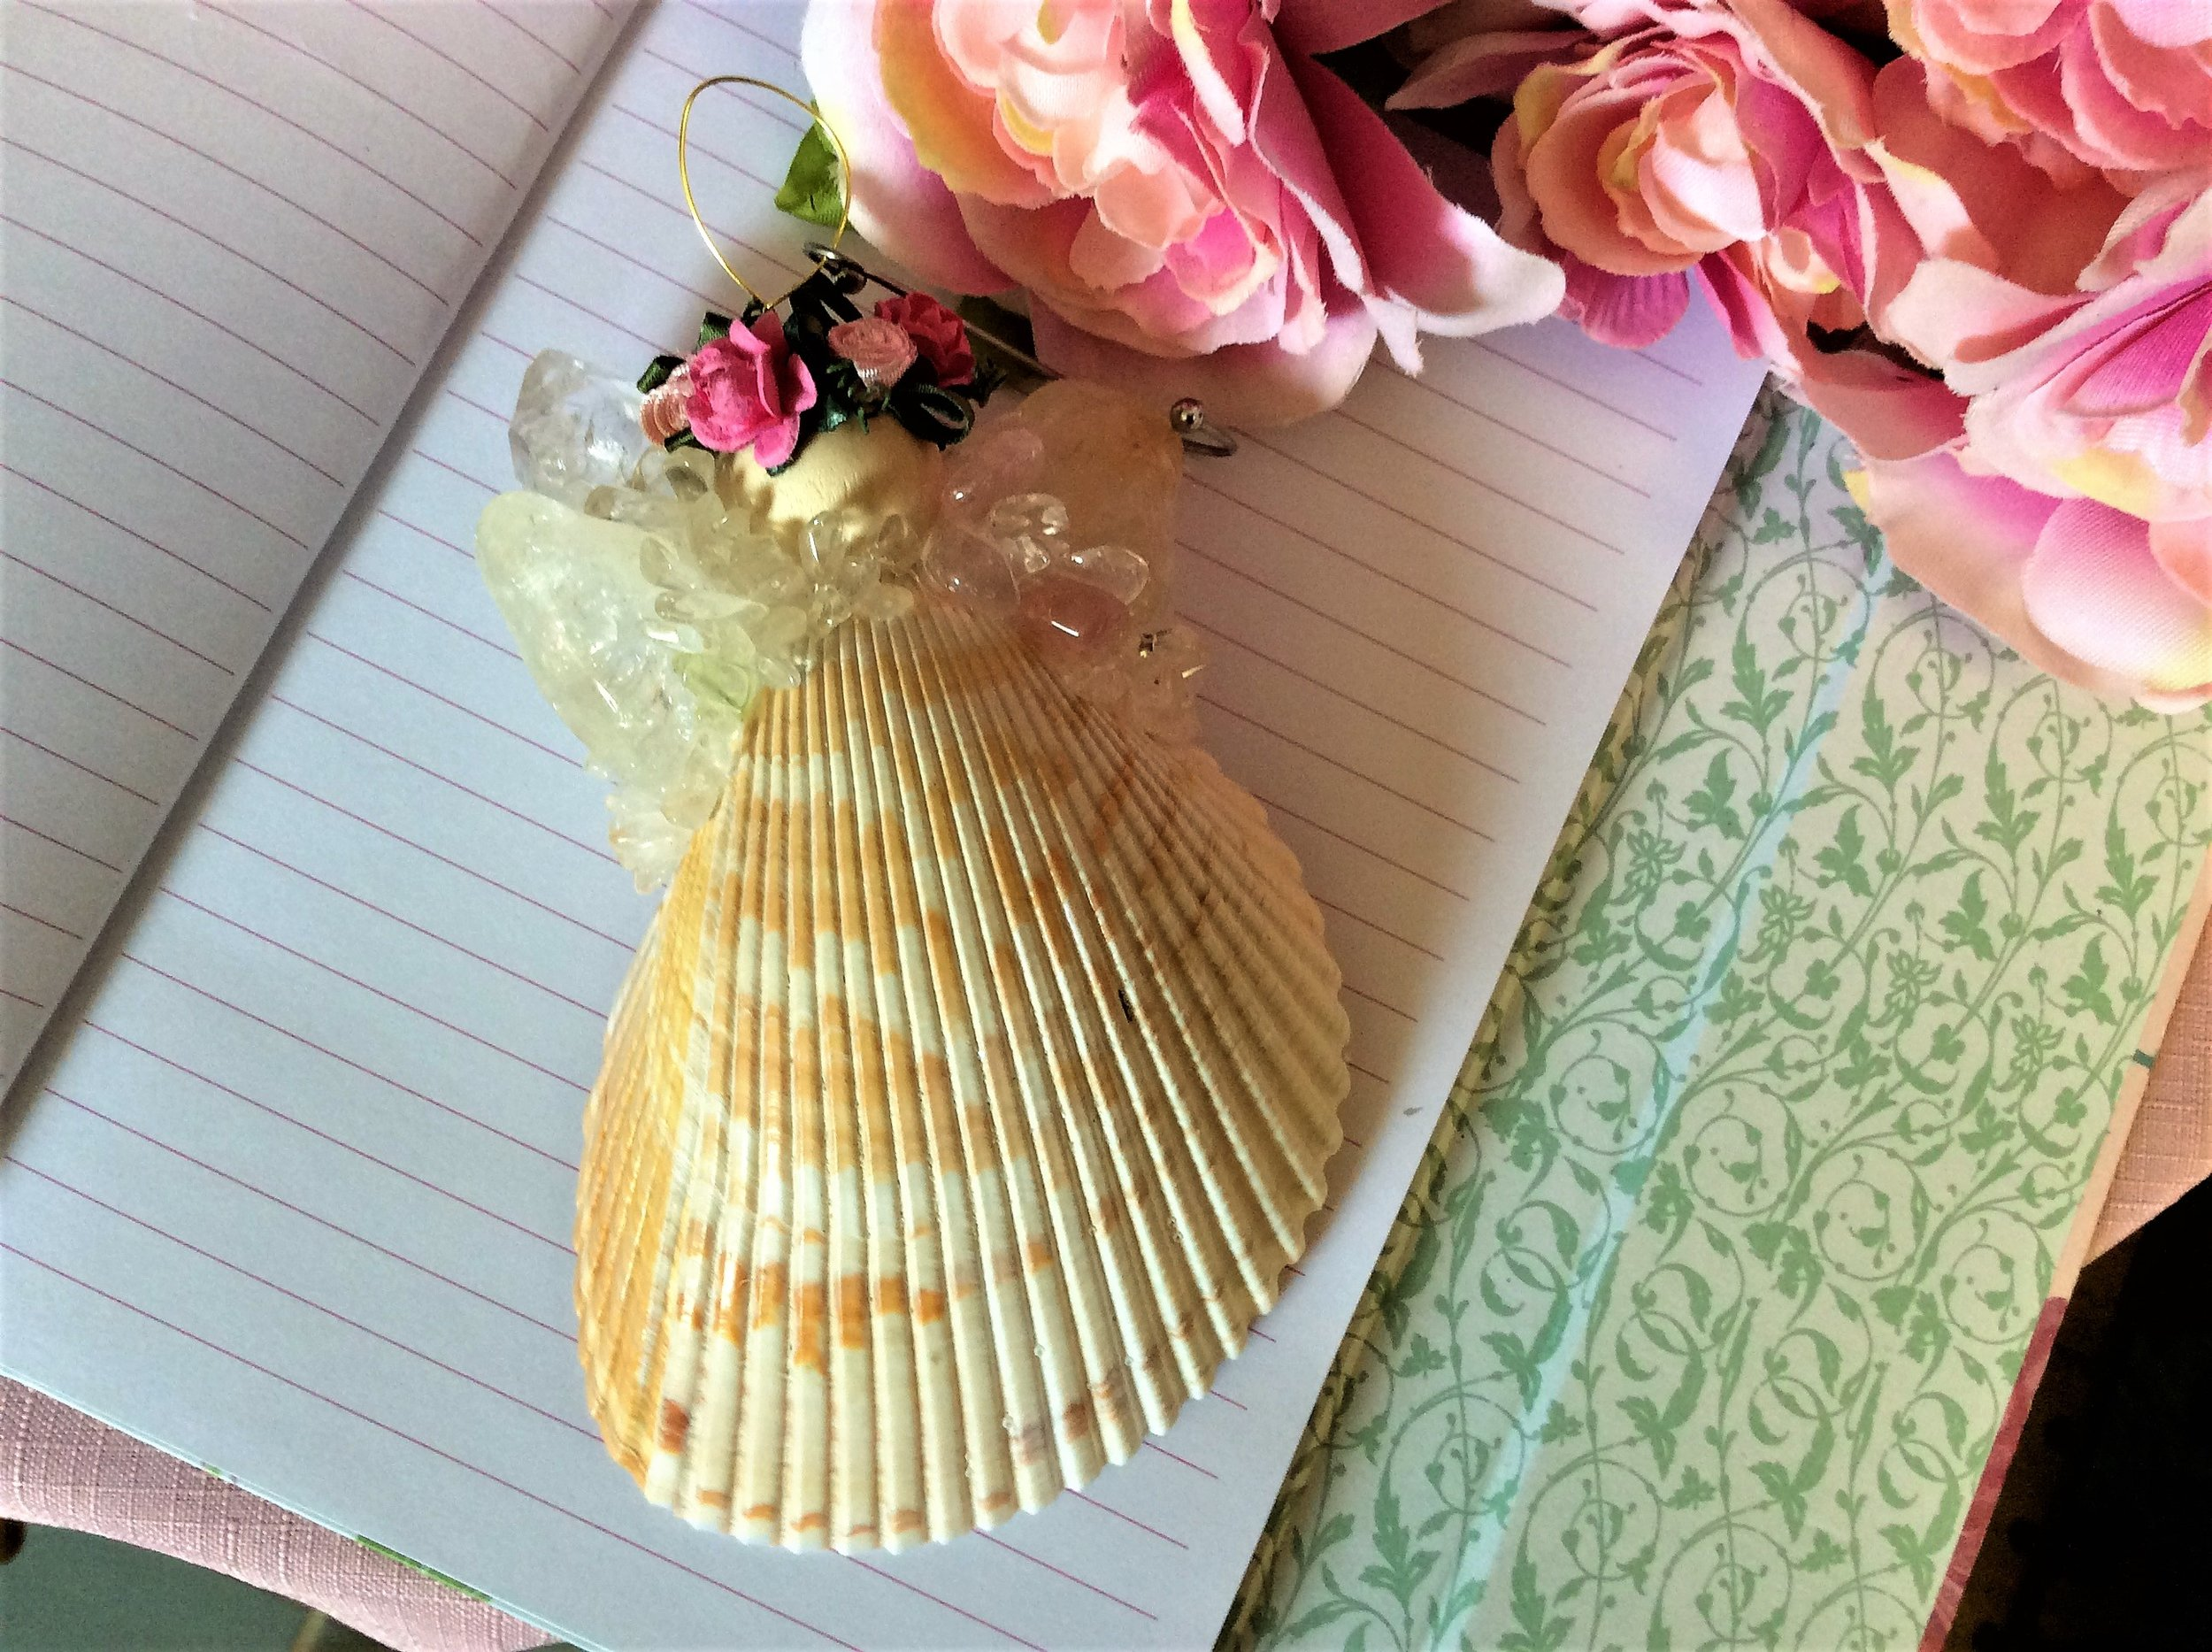 Earth Wish Angels Diary Reflection and Inspirational Guardian Angel